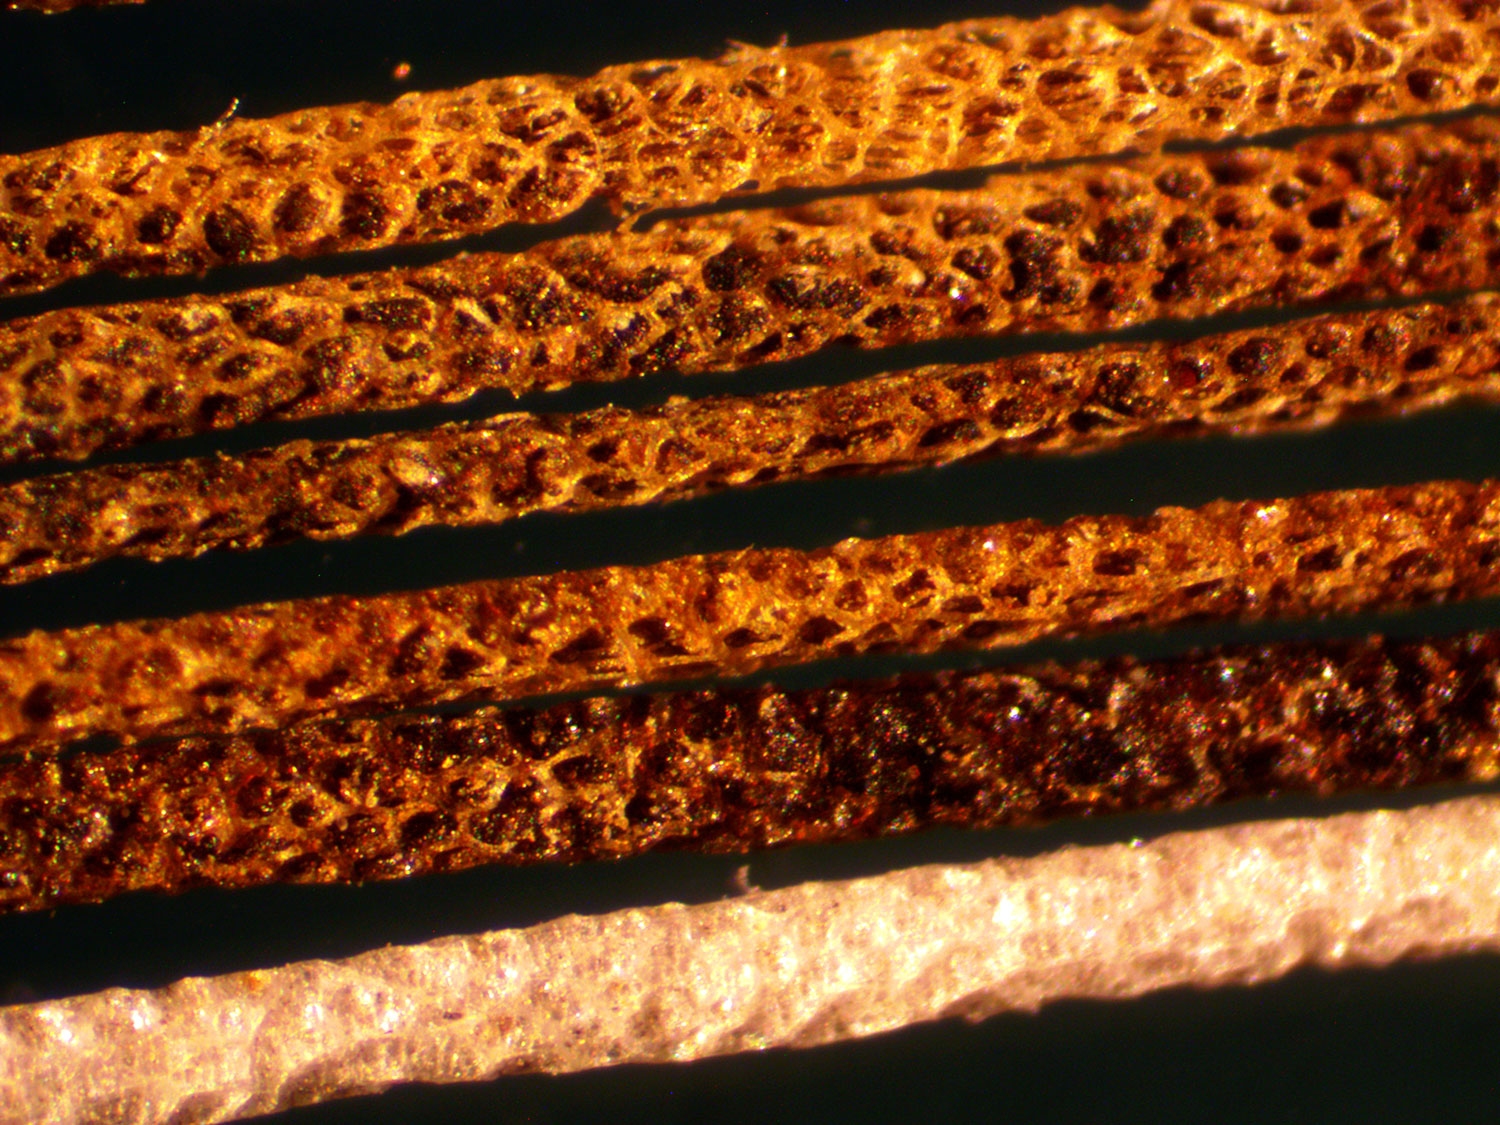 Microscopic close up of the specialized hairs that the African crested rats lick and rub poison into from the poison arrow tree. The hairs are brown strands with holes all over the shaft.